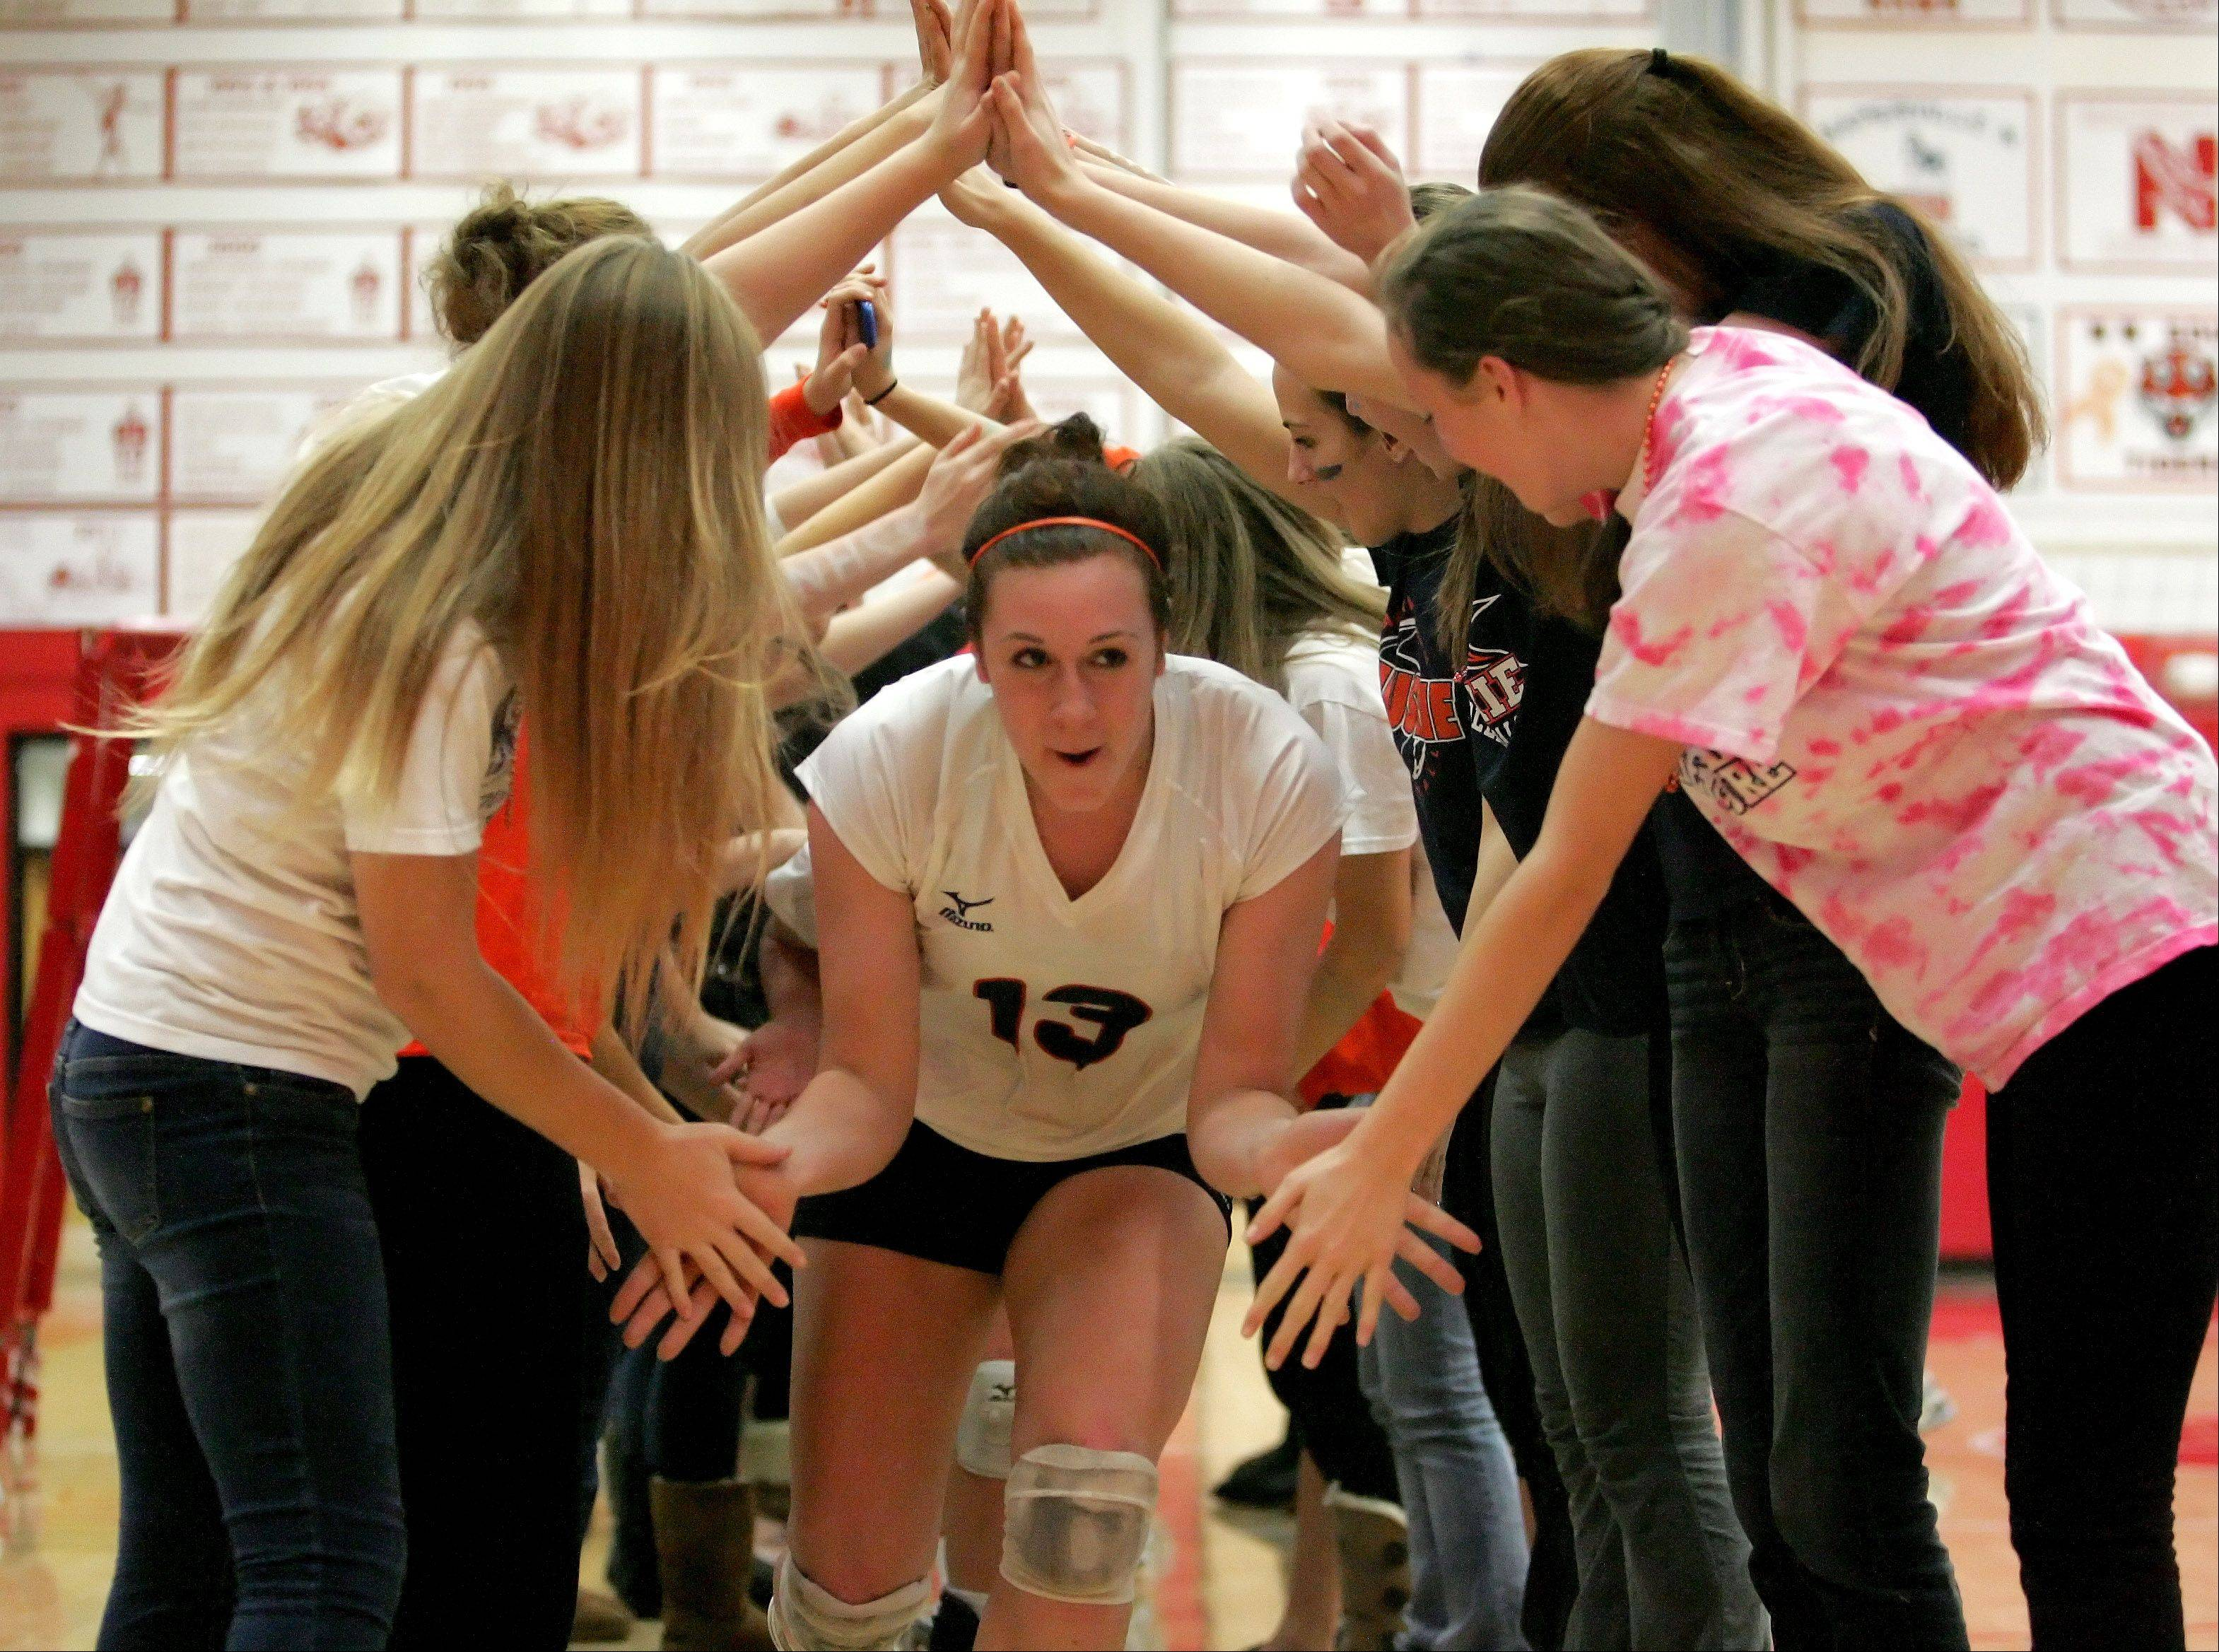 Corinne Gajcak and the rest of Naperville North come through an arch from the fans after North's win over Neuqua Valley in Class 4A girls volleyball regional semifinals at Naperville Central on Monday.